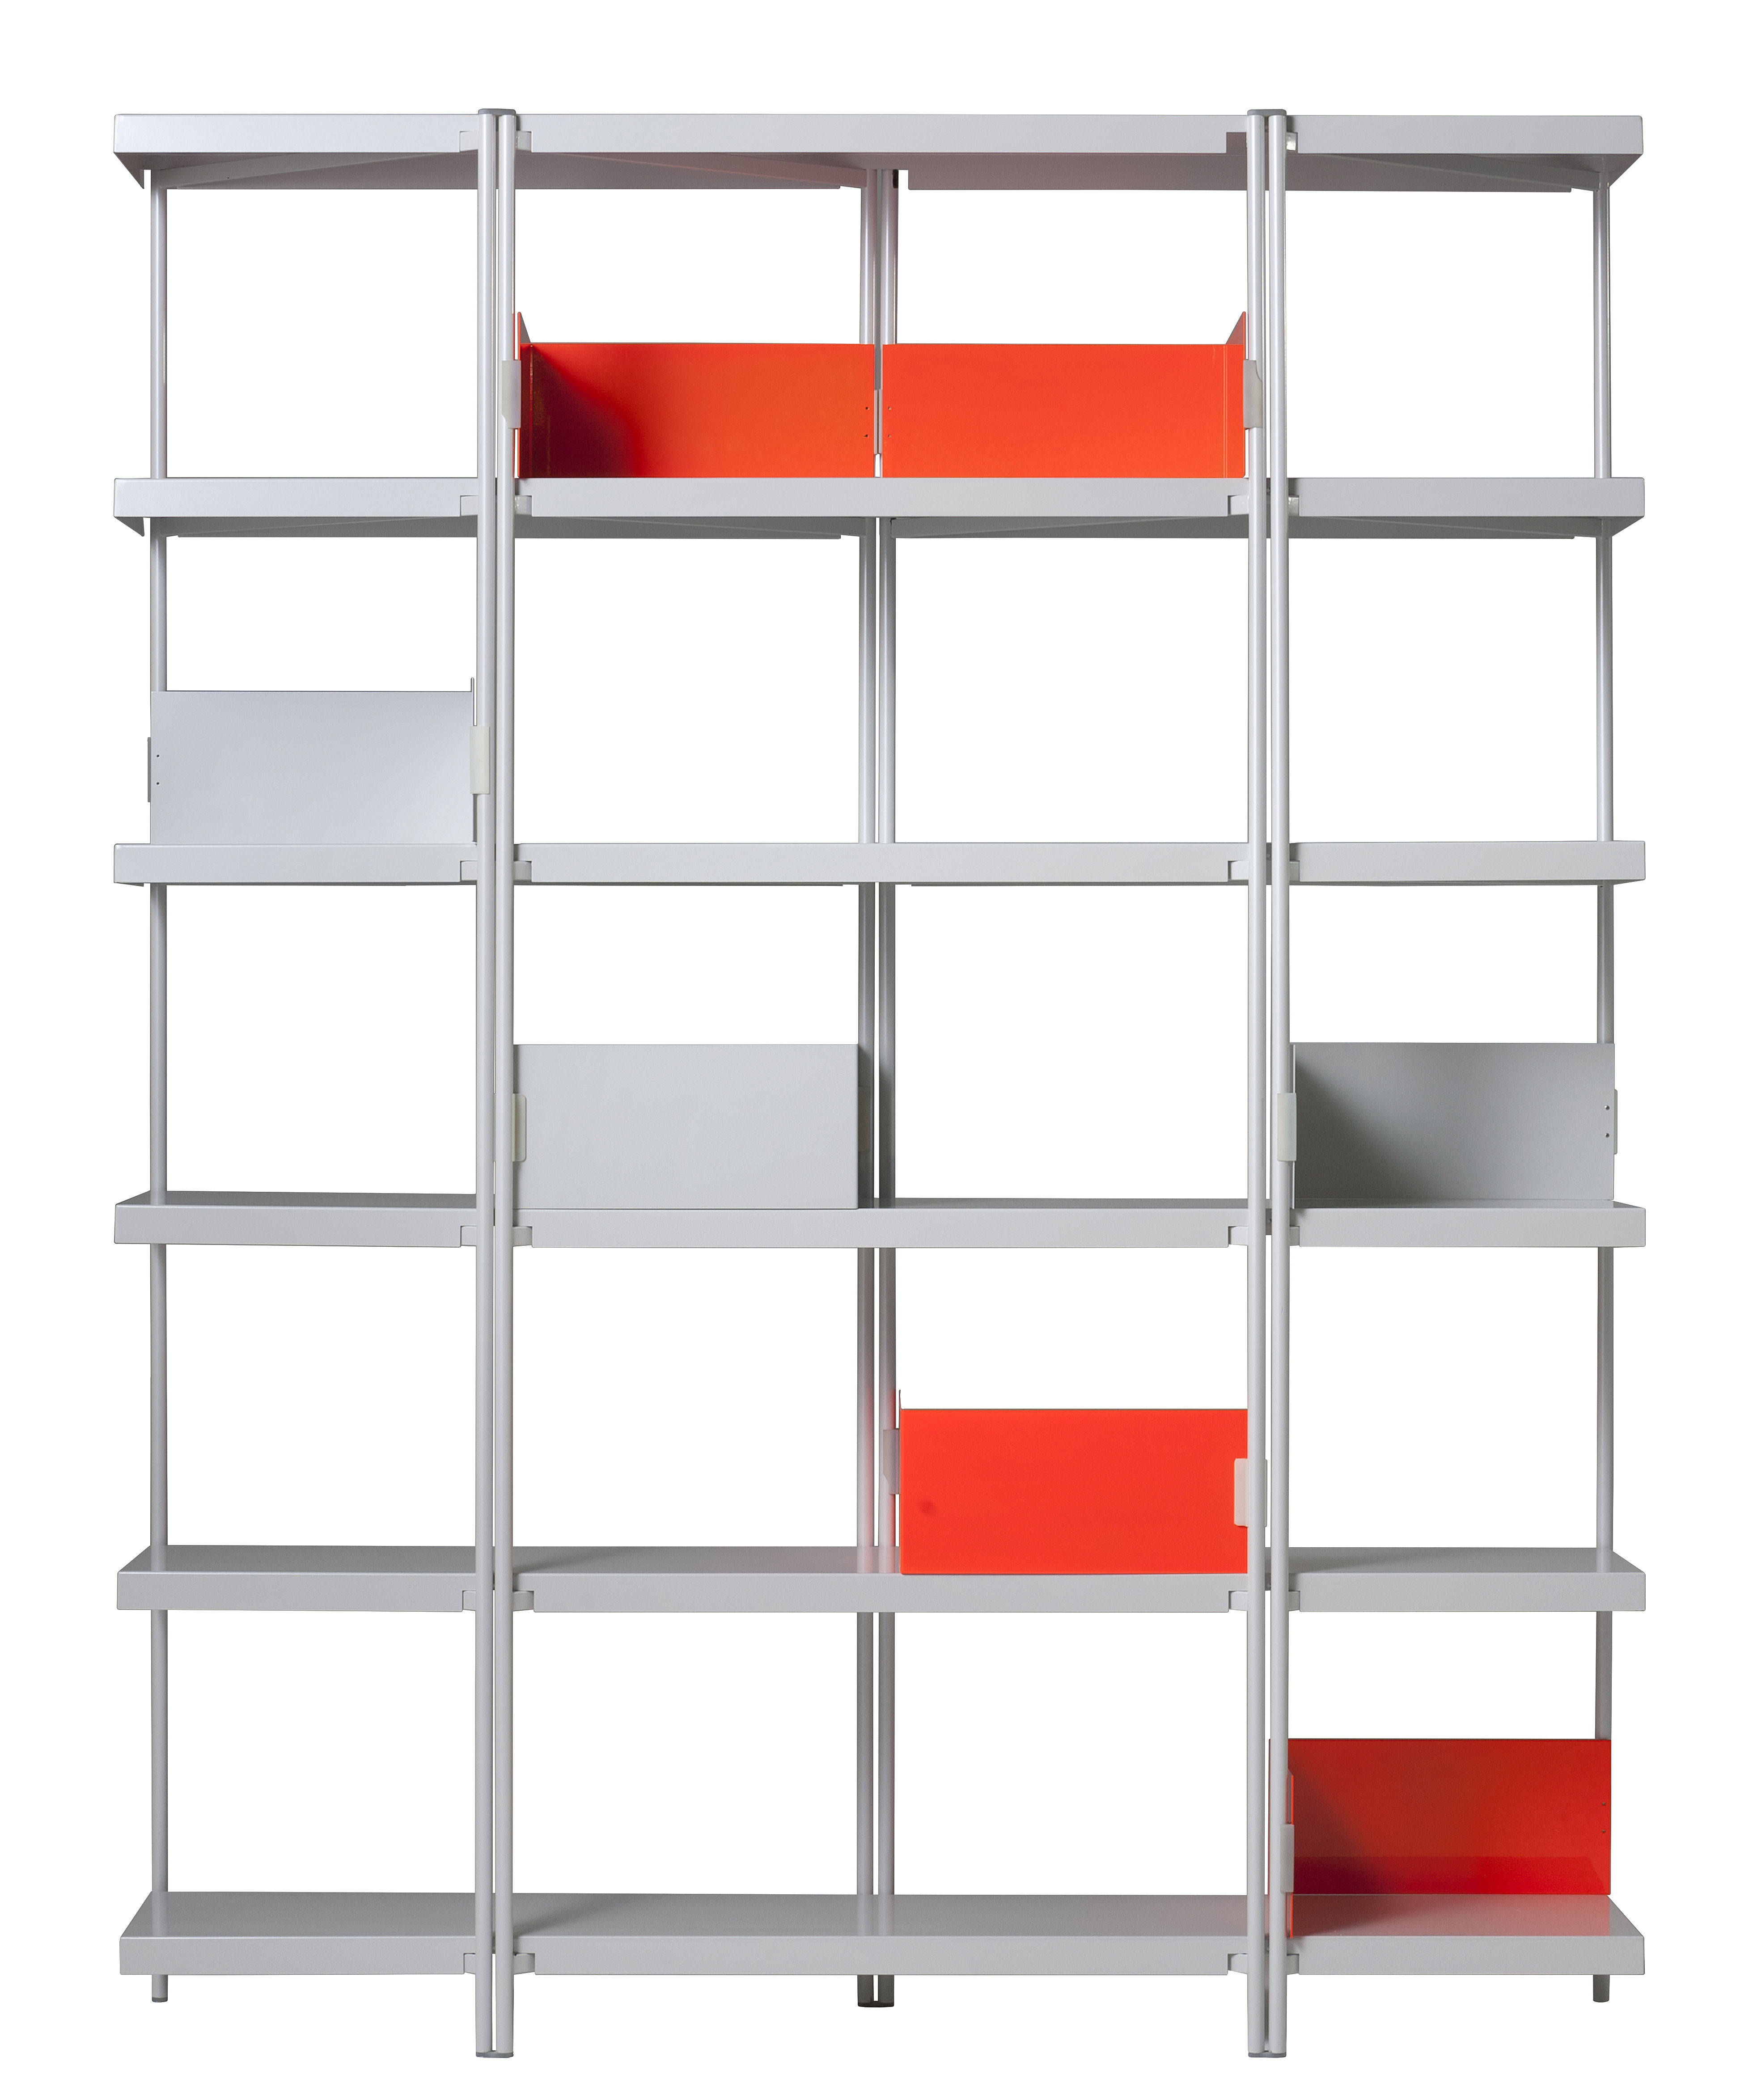 Furniture - Bookcases & Bookshelves - ZigZag Bookcase - 1996 reissue - H 201 cm by Driade - White - Polished stainless steel